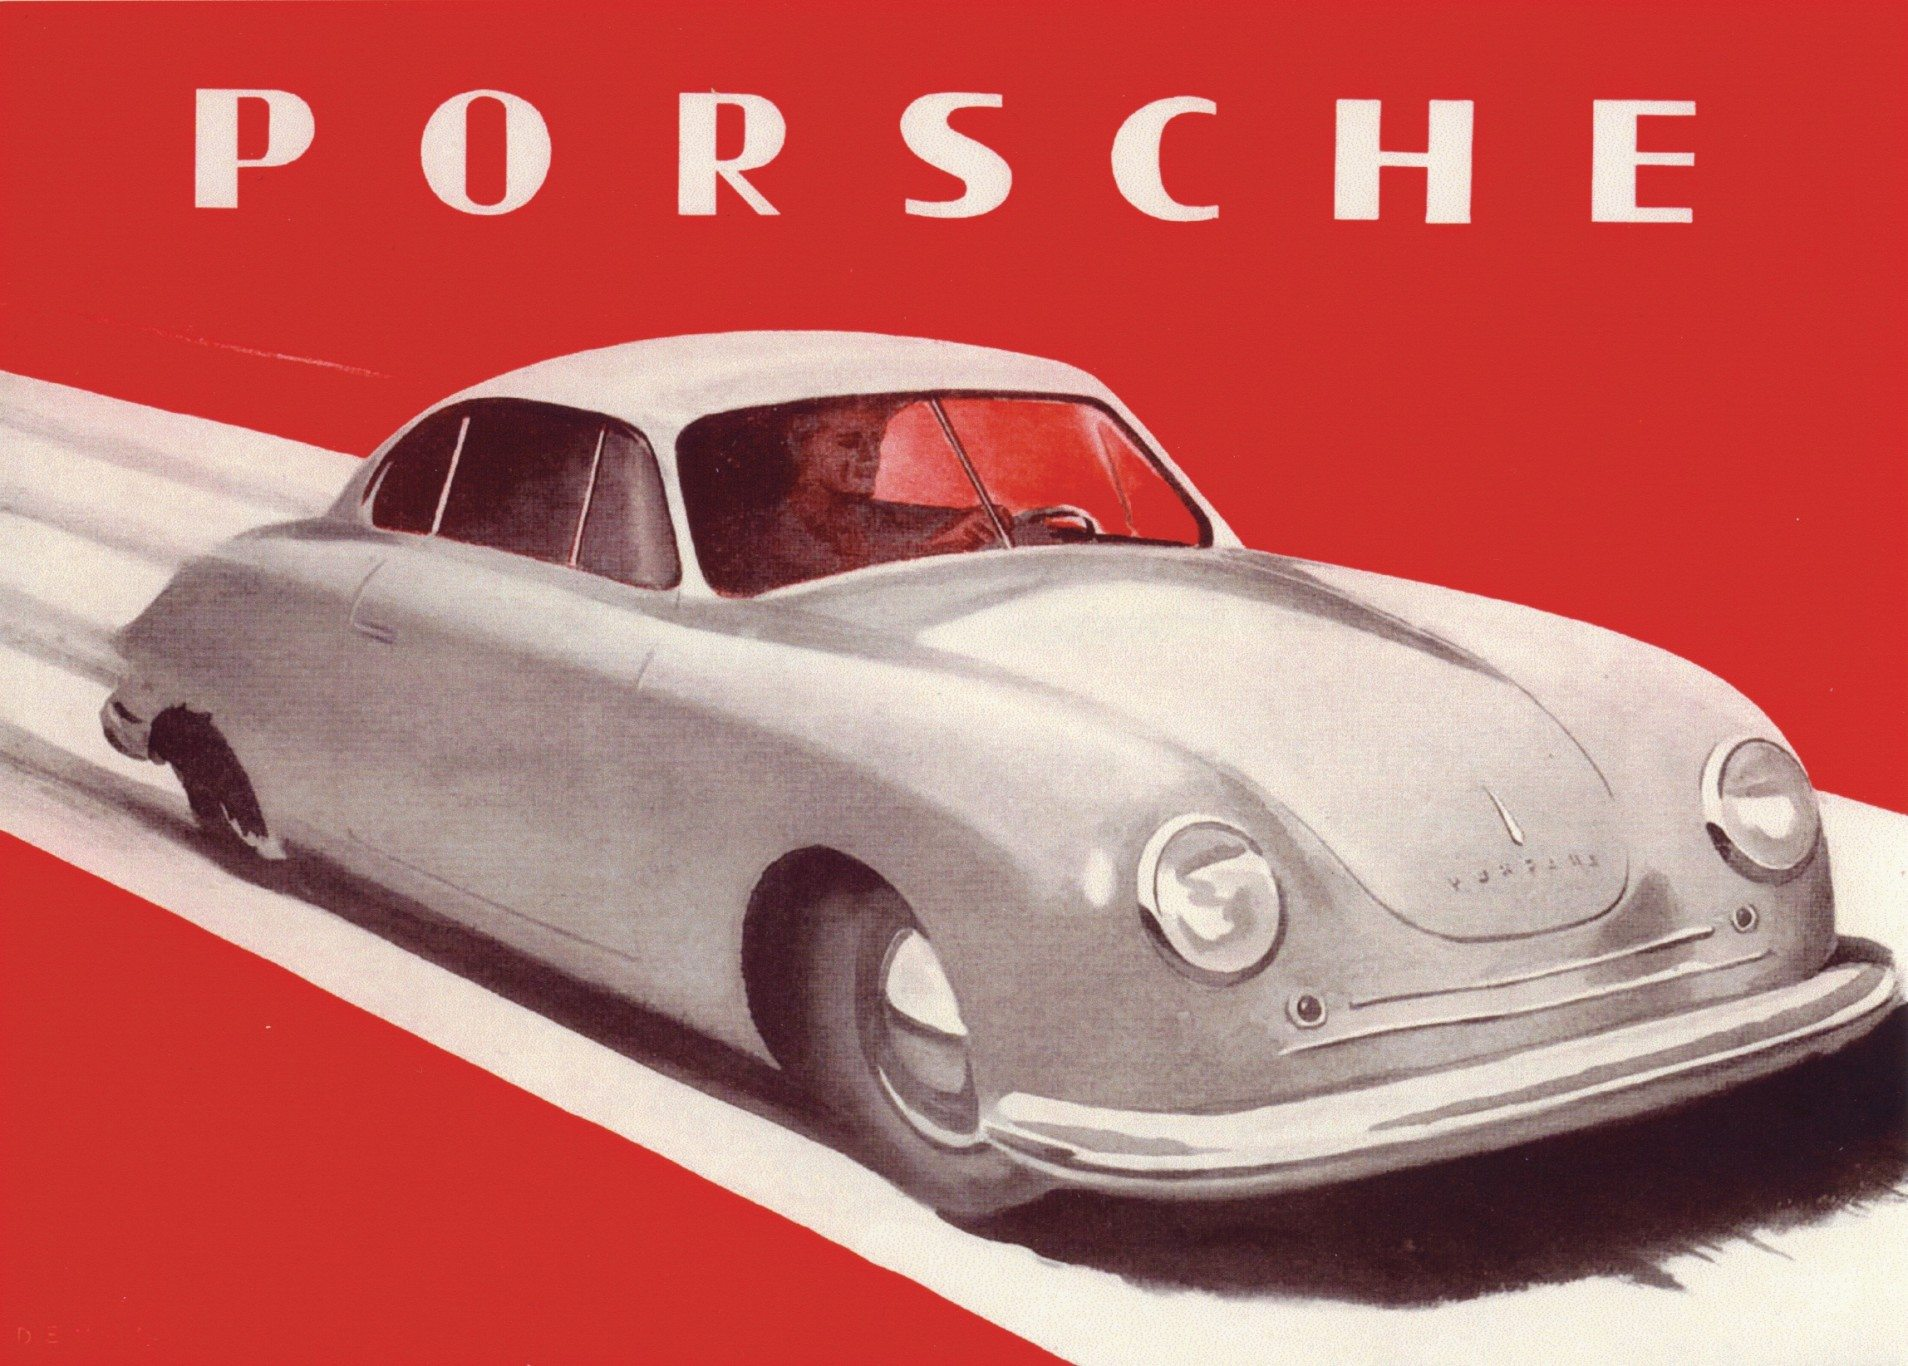 first Porsche sales brochure in 1948 1